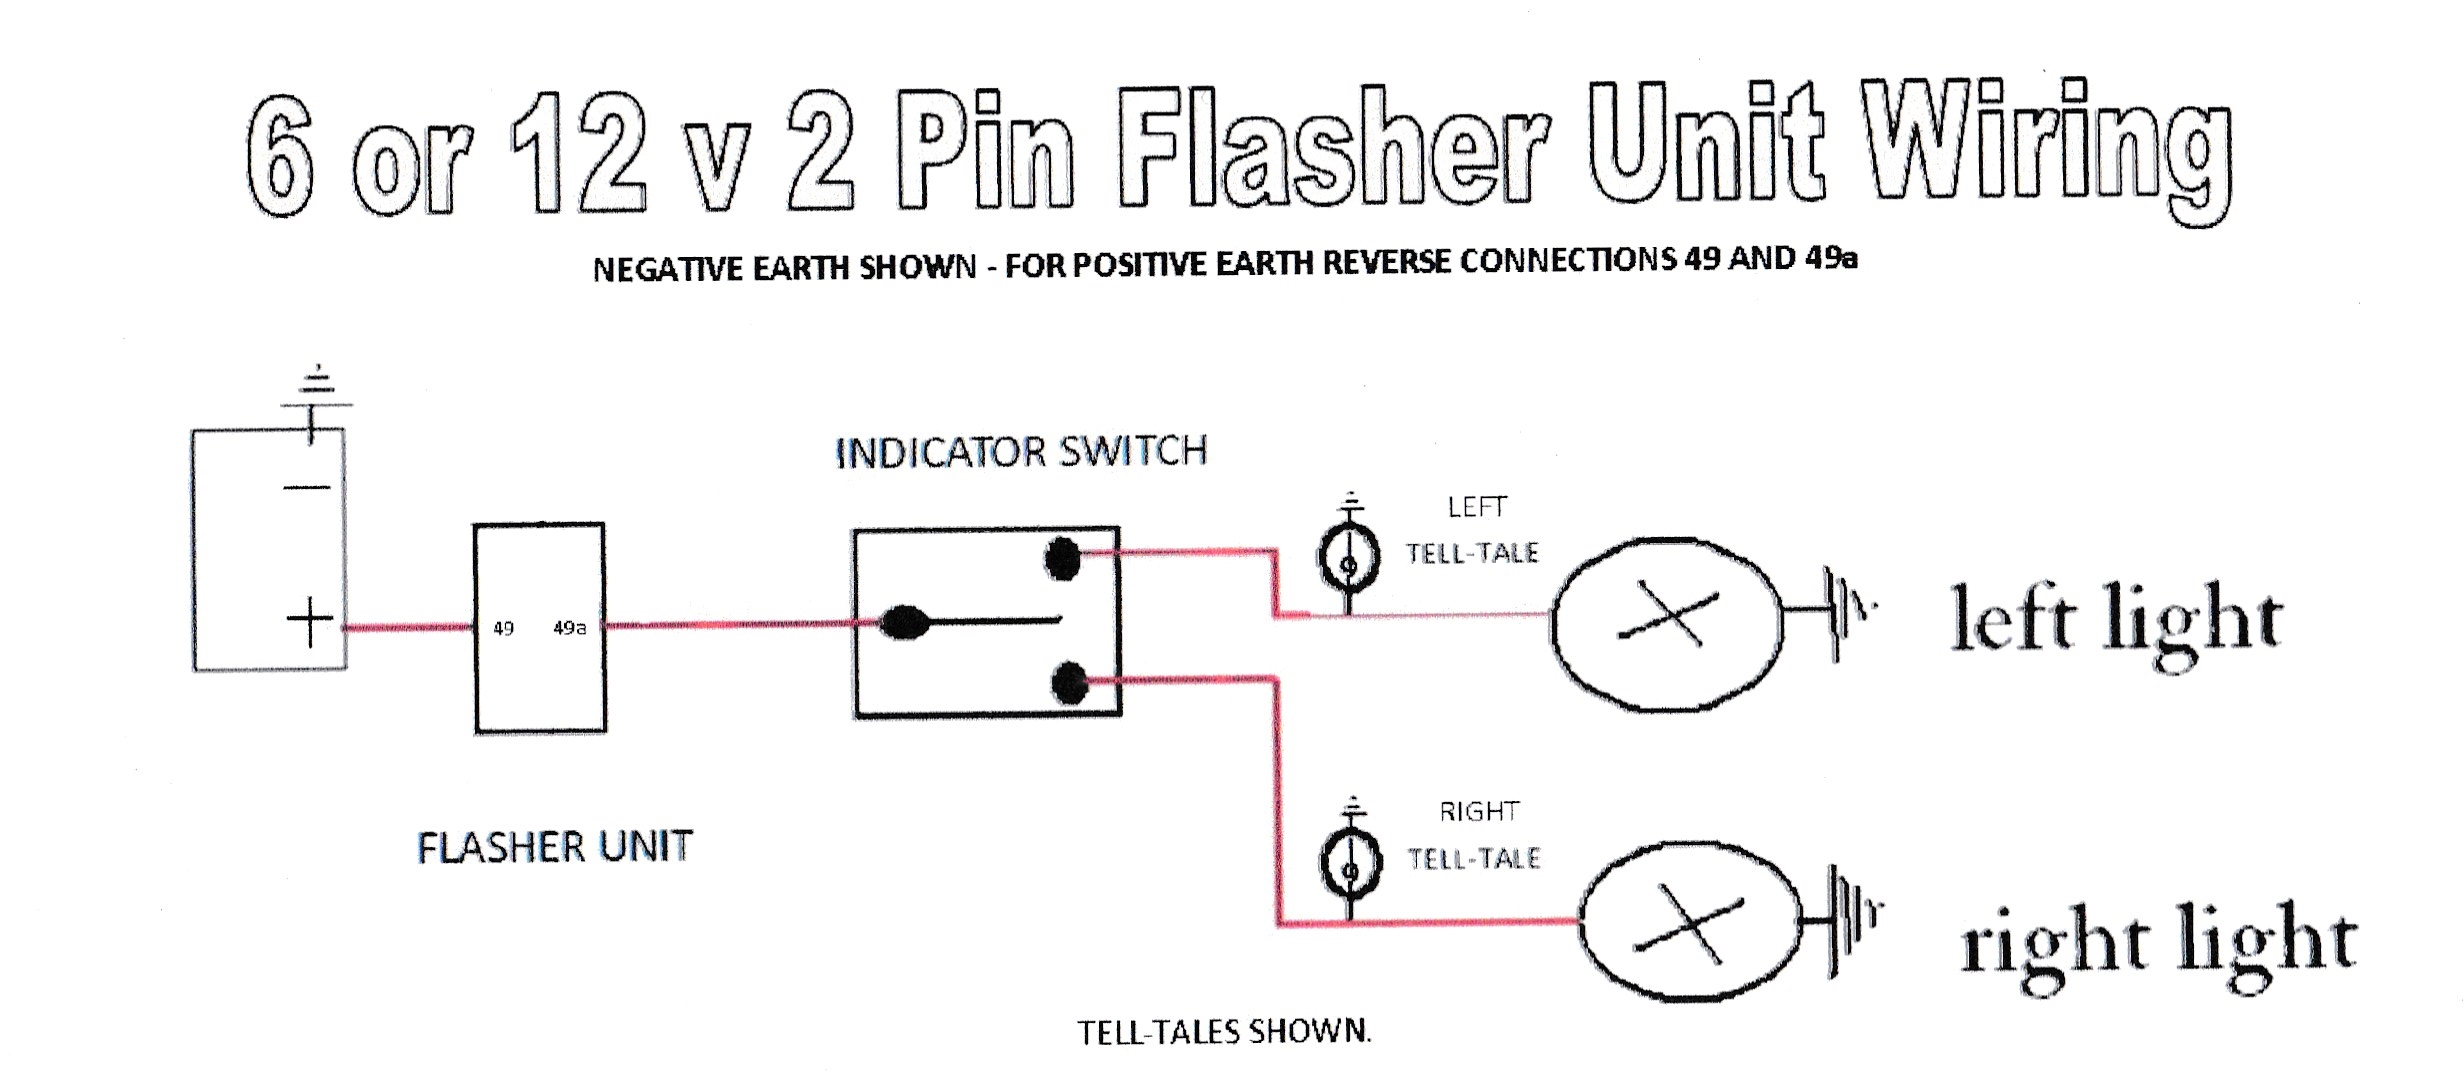 Miraculous Led Flasher Wiring Diagram Wiring Diagram Database Wiring Cloud Faunaidewilluminateatxorg